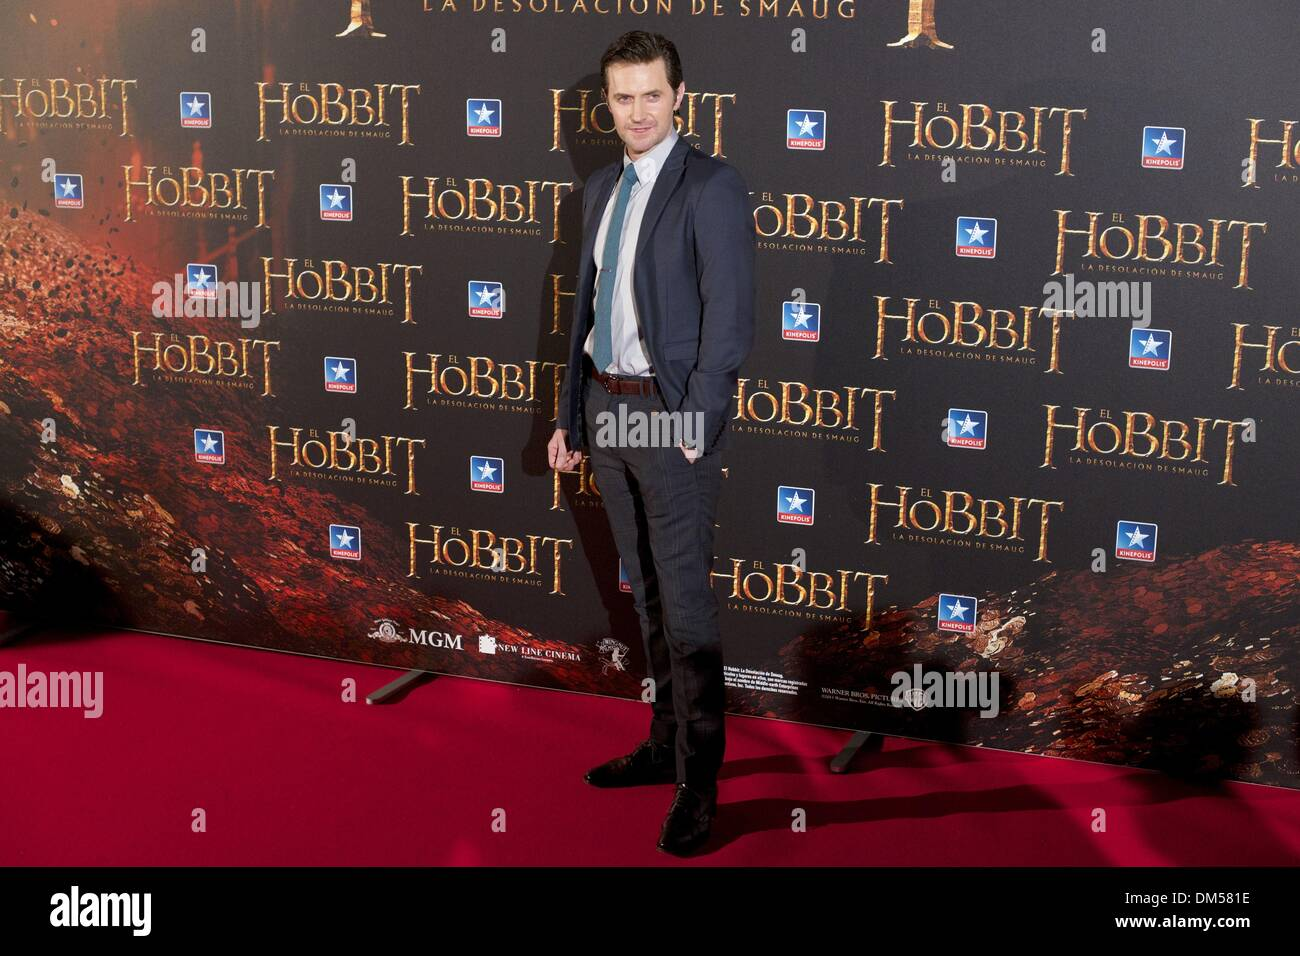 Madrid Spain 11th Dec 2013 Richard Armitage Attends The Hobbit Stock Photo Royalty Free